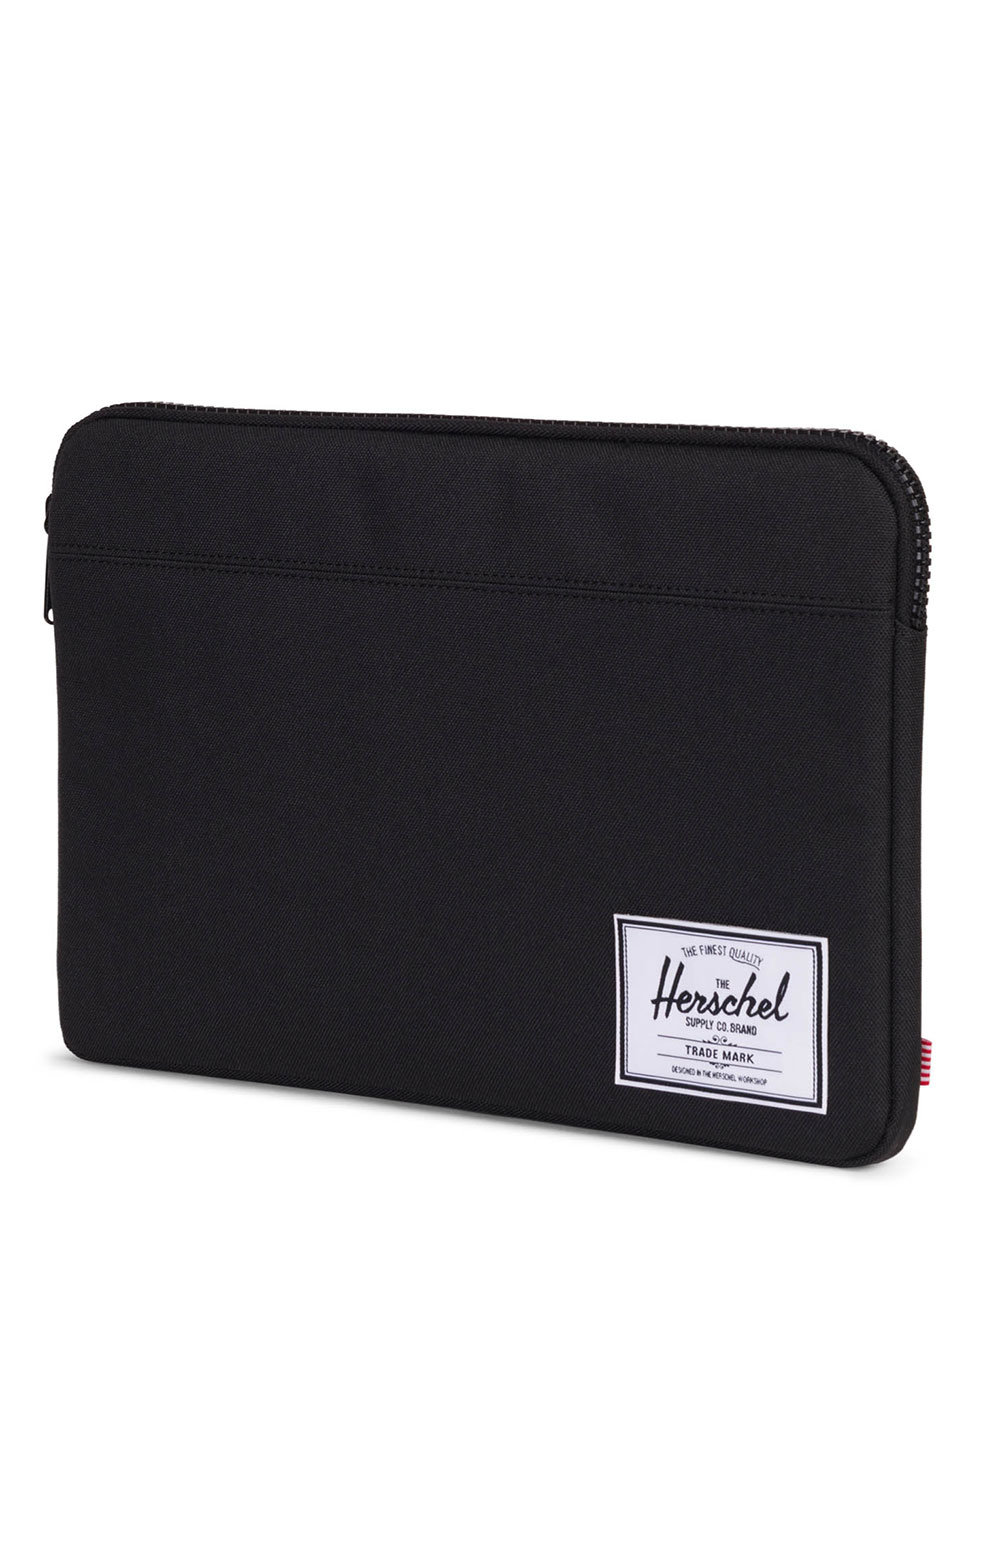 Anchor 15 Computer Sleeve - Black 2